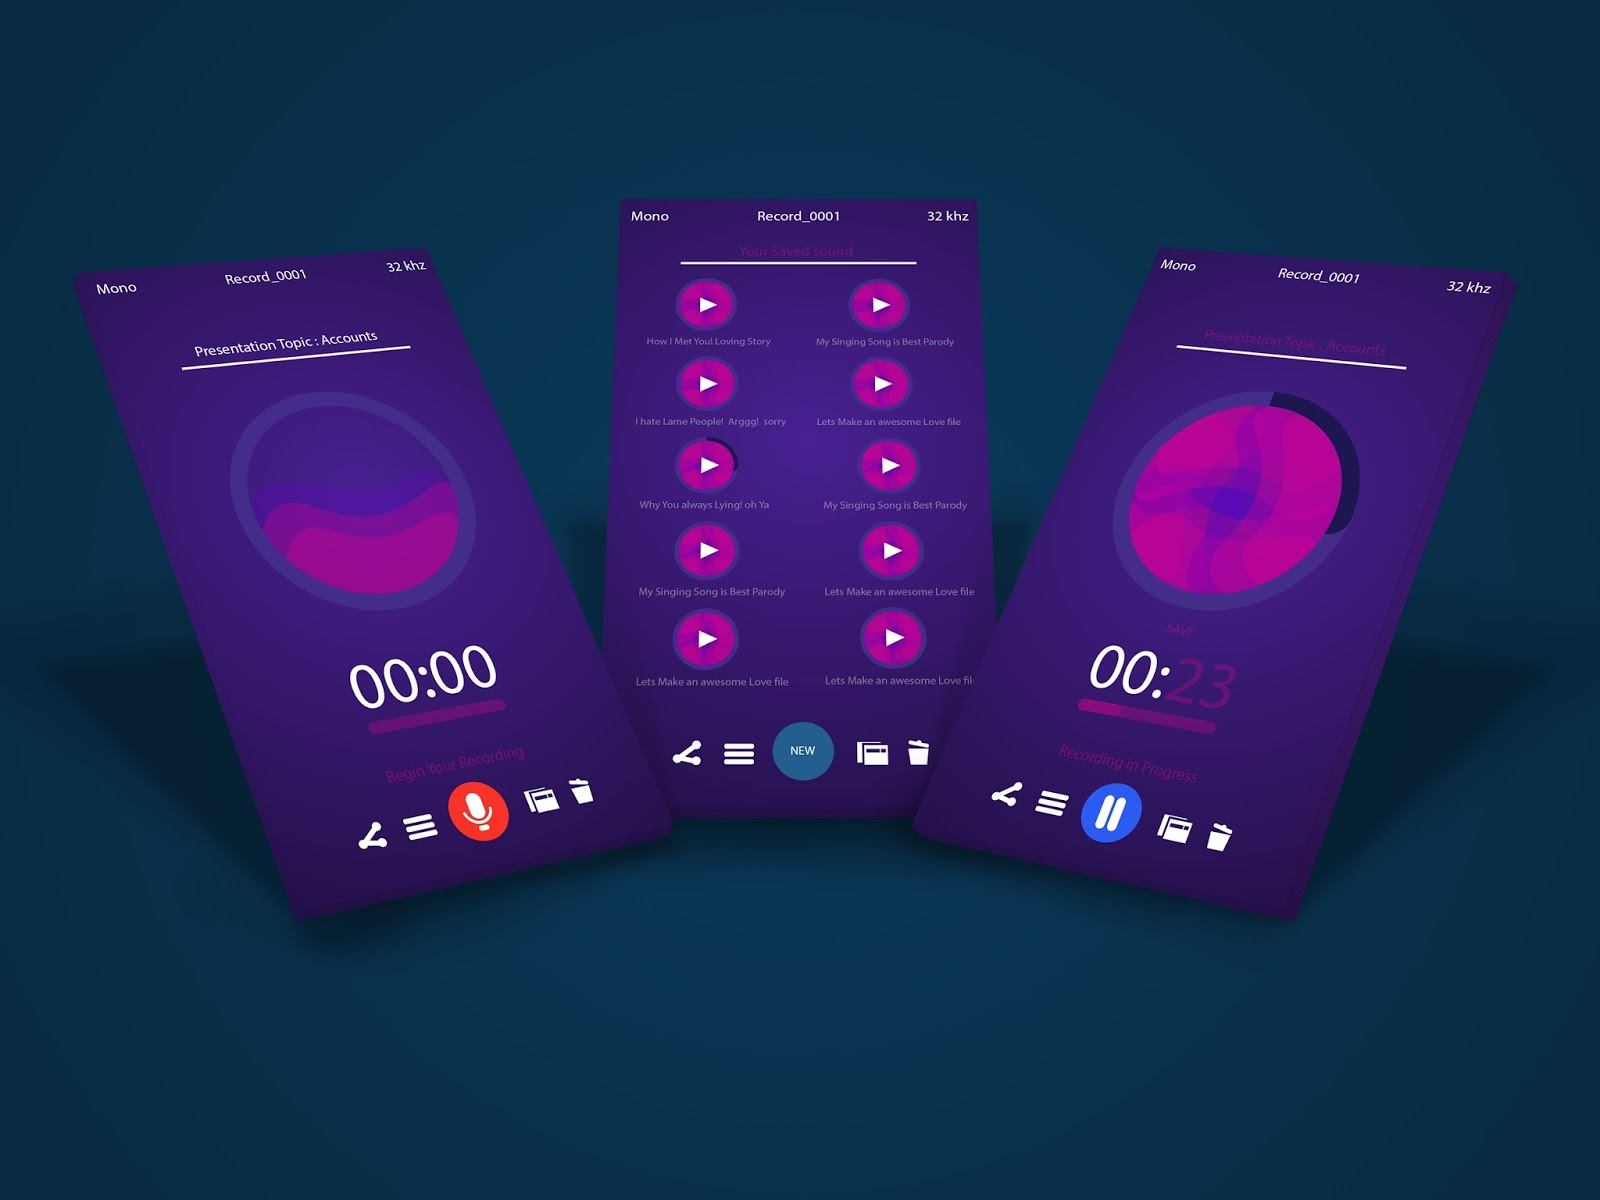 android apps design psd free download - Romeo.landinez.co